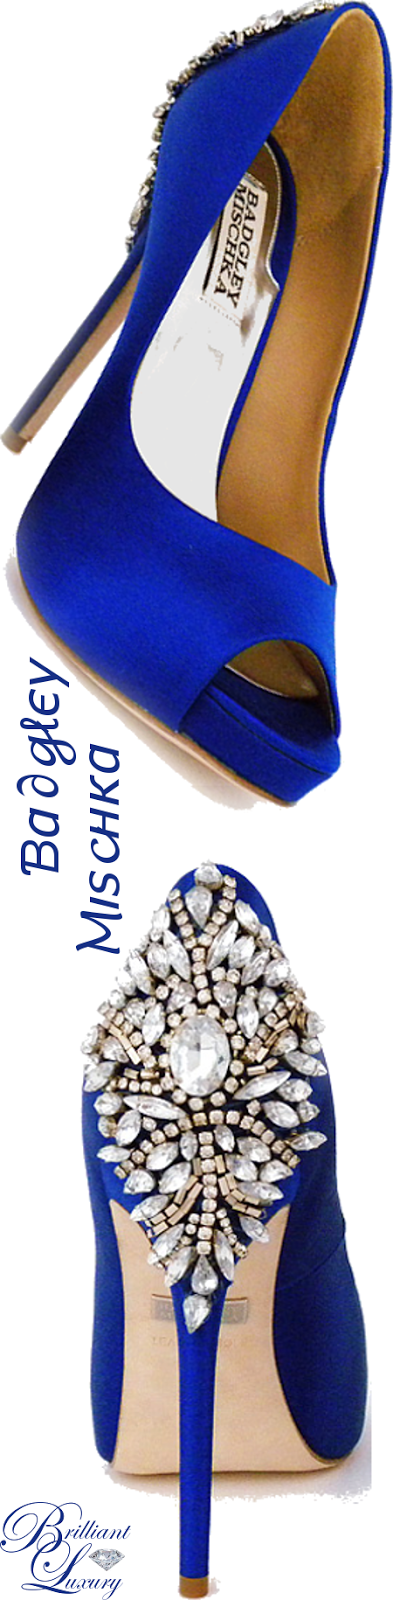 Brilliant Luxury ♦ Badgley Mischka 'Kiara Sapphire'